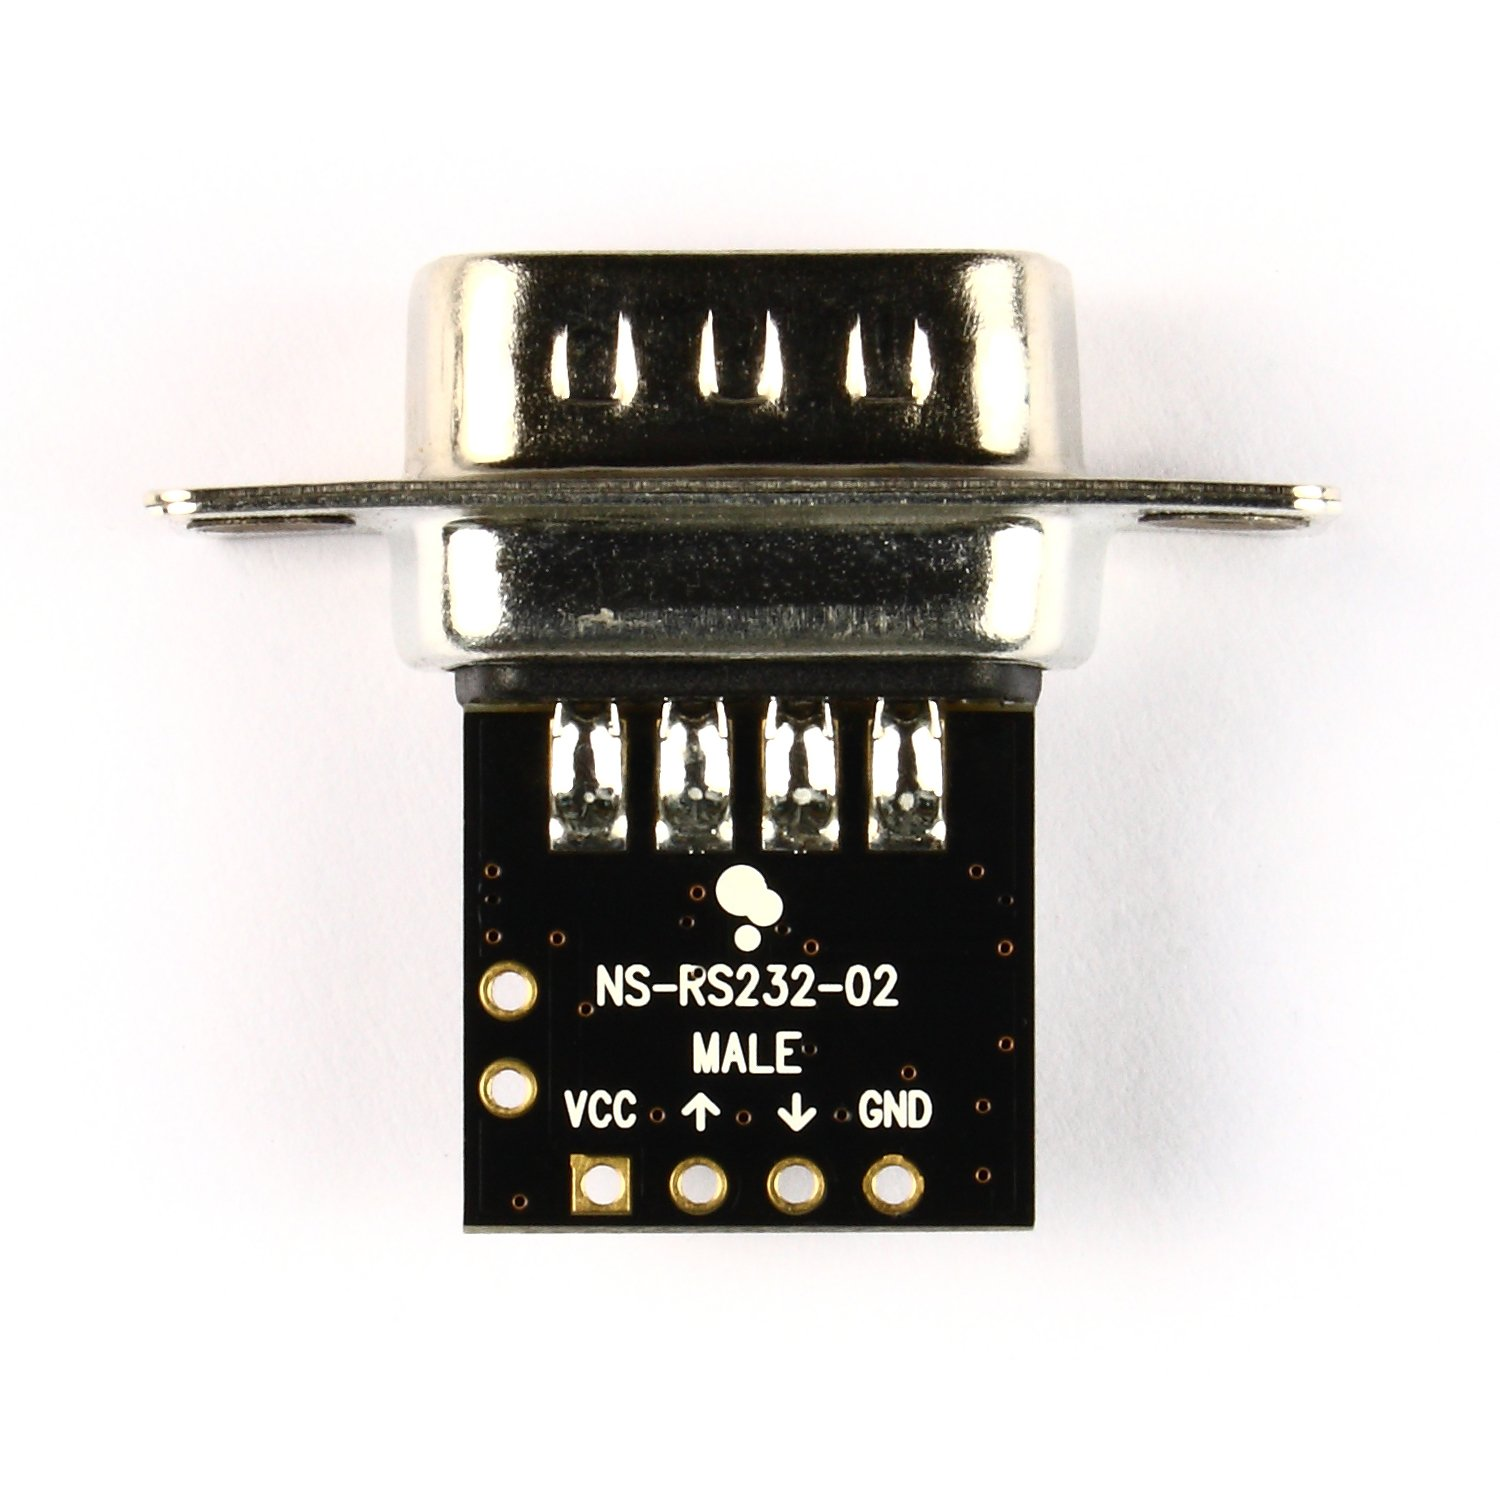 Ultra Compact Rs232 To Ttl Converter With Male Db9 33v Selecting And Using Rs 232 Interface Parts For Your Power Supply Voltages 5v Computers Accessories